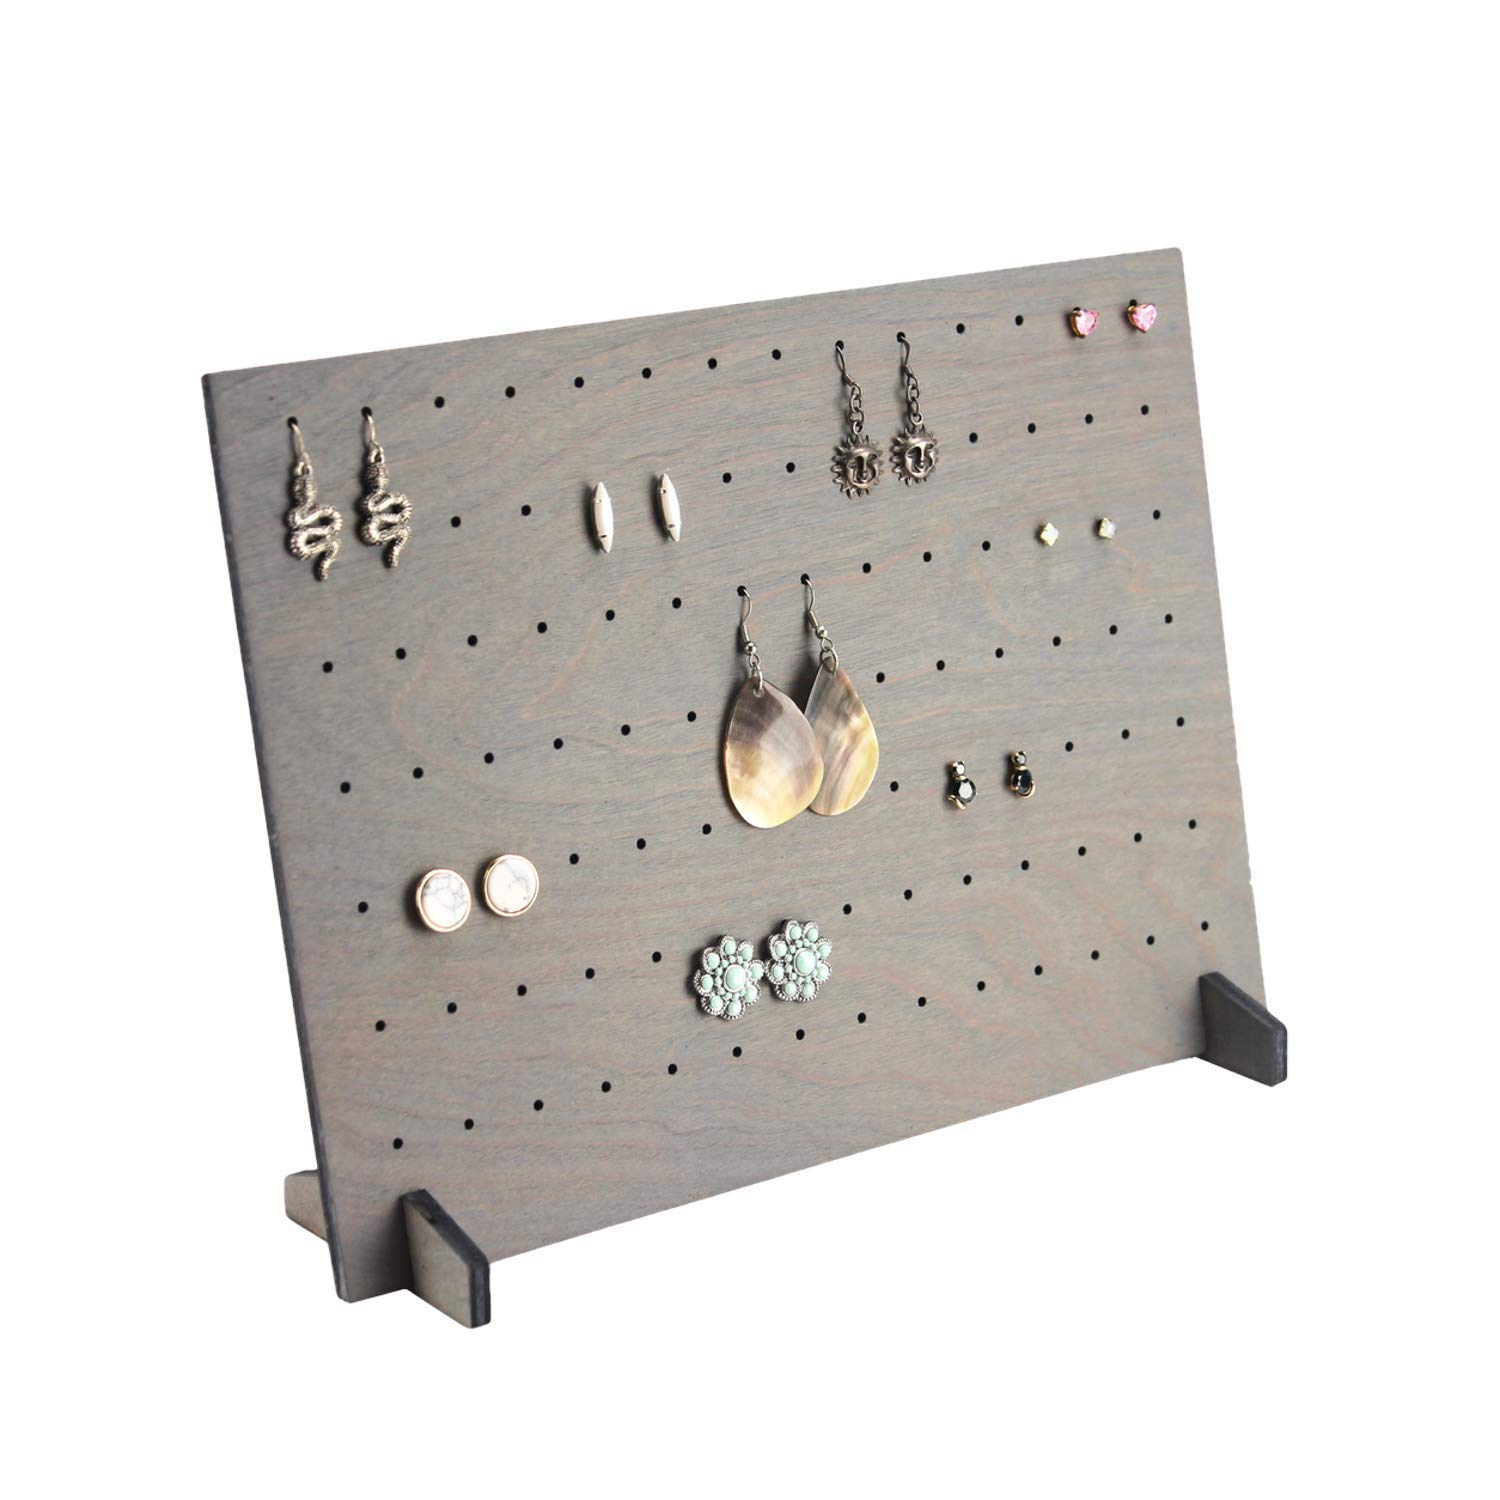 Earring Display Stand Stud Wood Display Made in USA Fully Collapsible for Craft Show and Retail Boutique Rustic Wood Jewelry Stud Display Gray